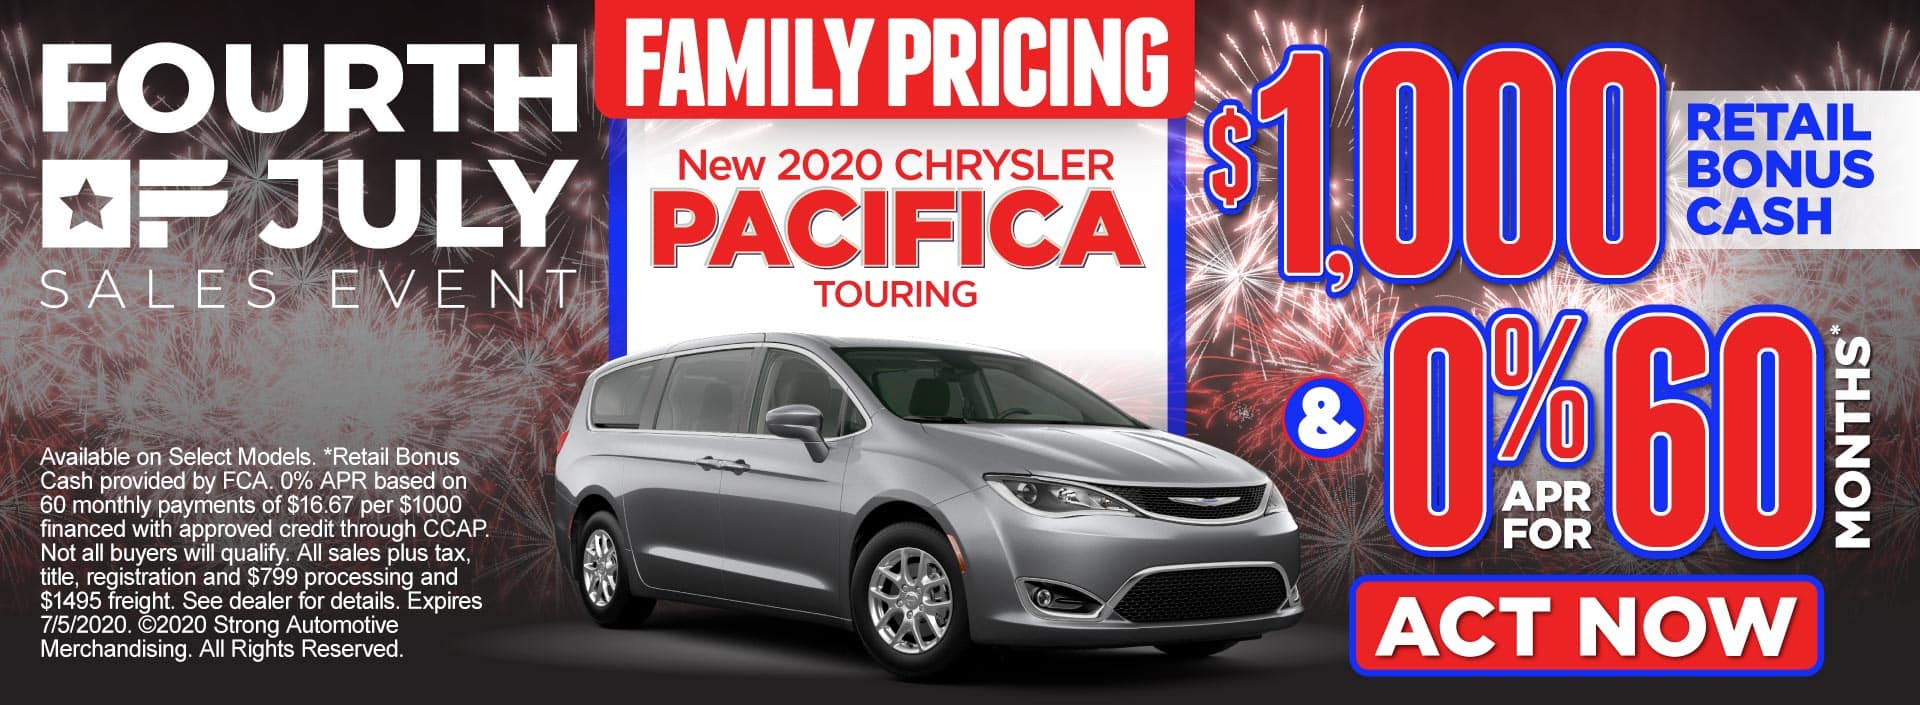 Family Pricing on the New 2020 Chrysler Pacifica - $1,000 retail bonus cash and 0% APR for 60 months* – Click to View Inventory